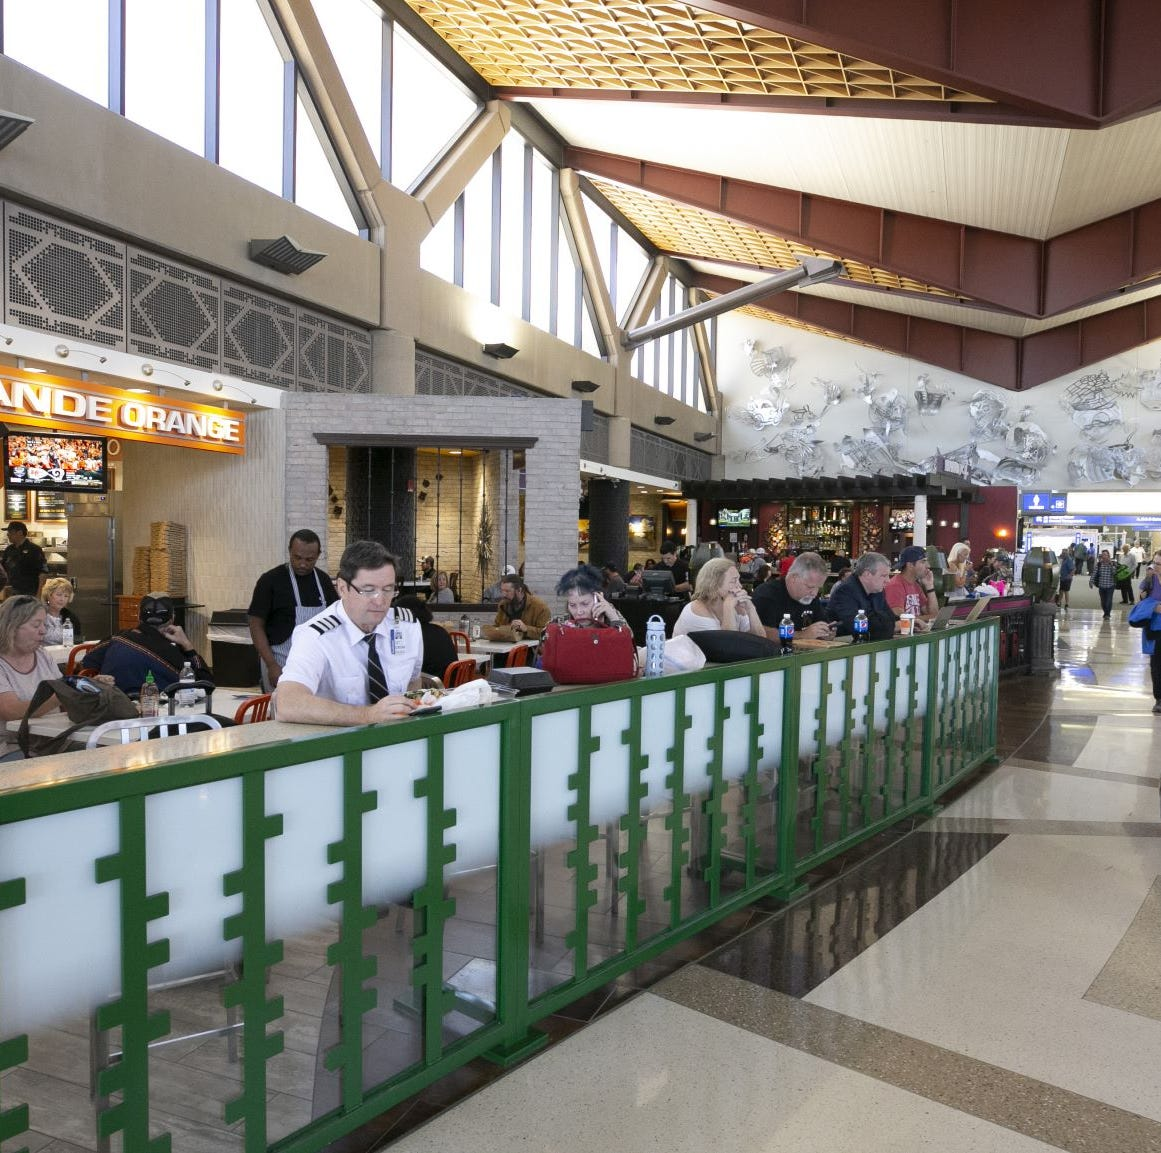 Phoenix airport restaurants: How much have prices gone up since street pricing ended?